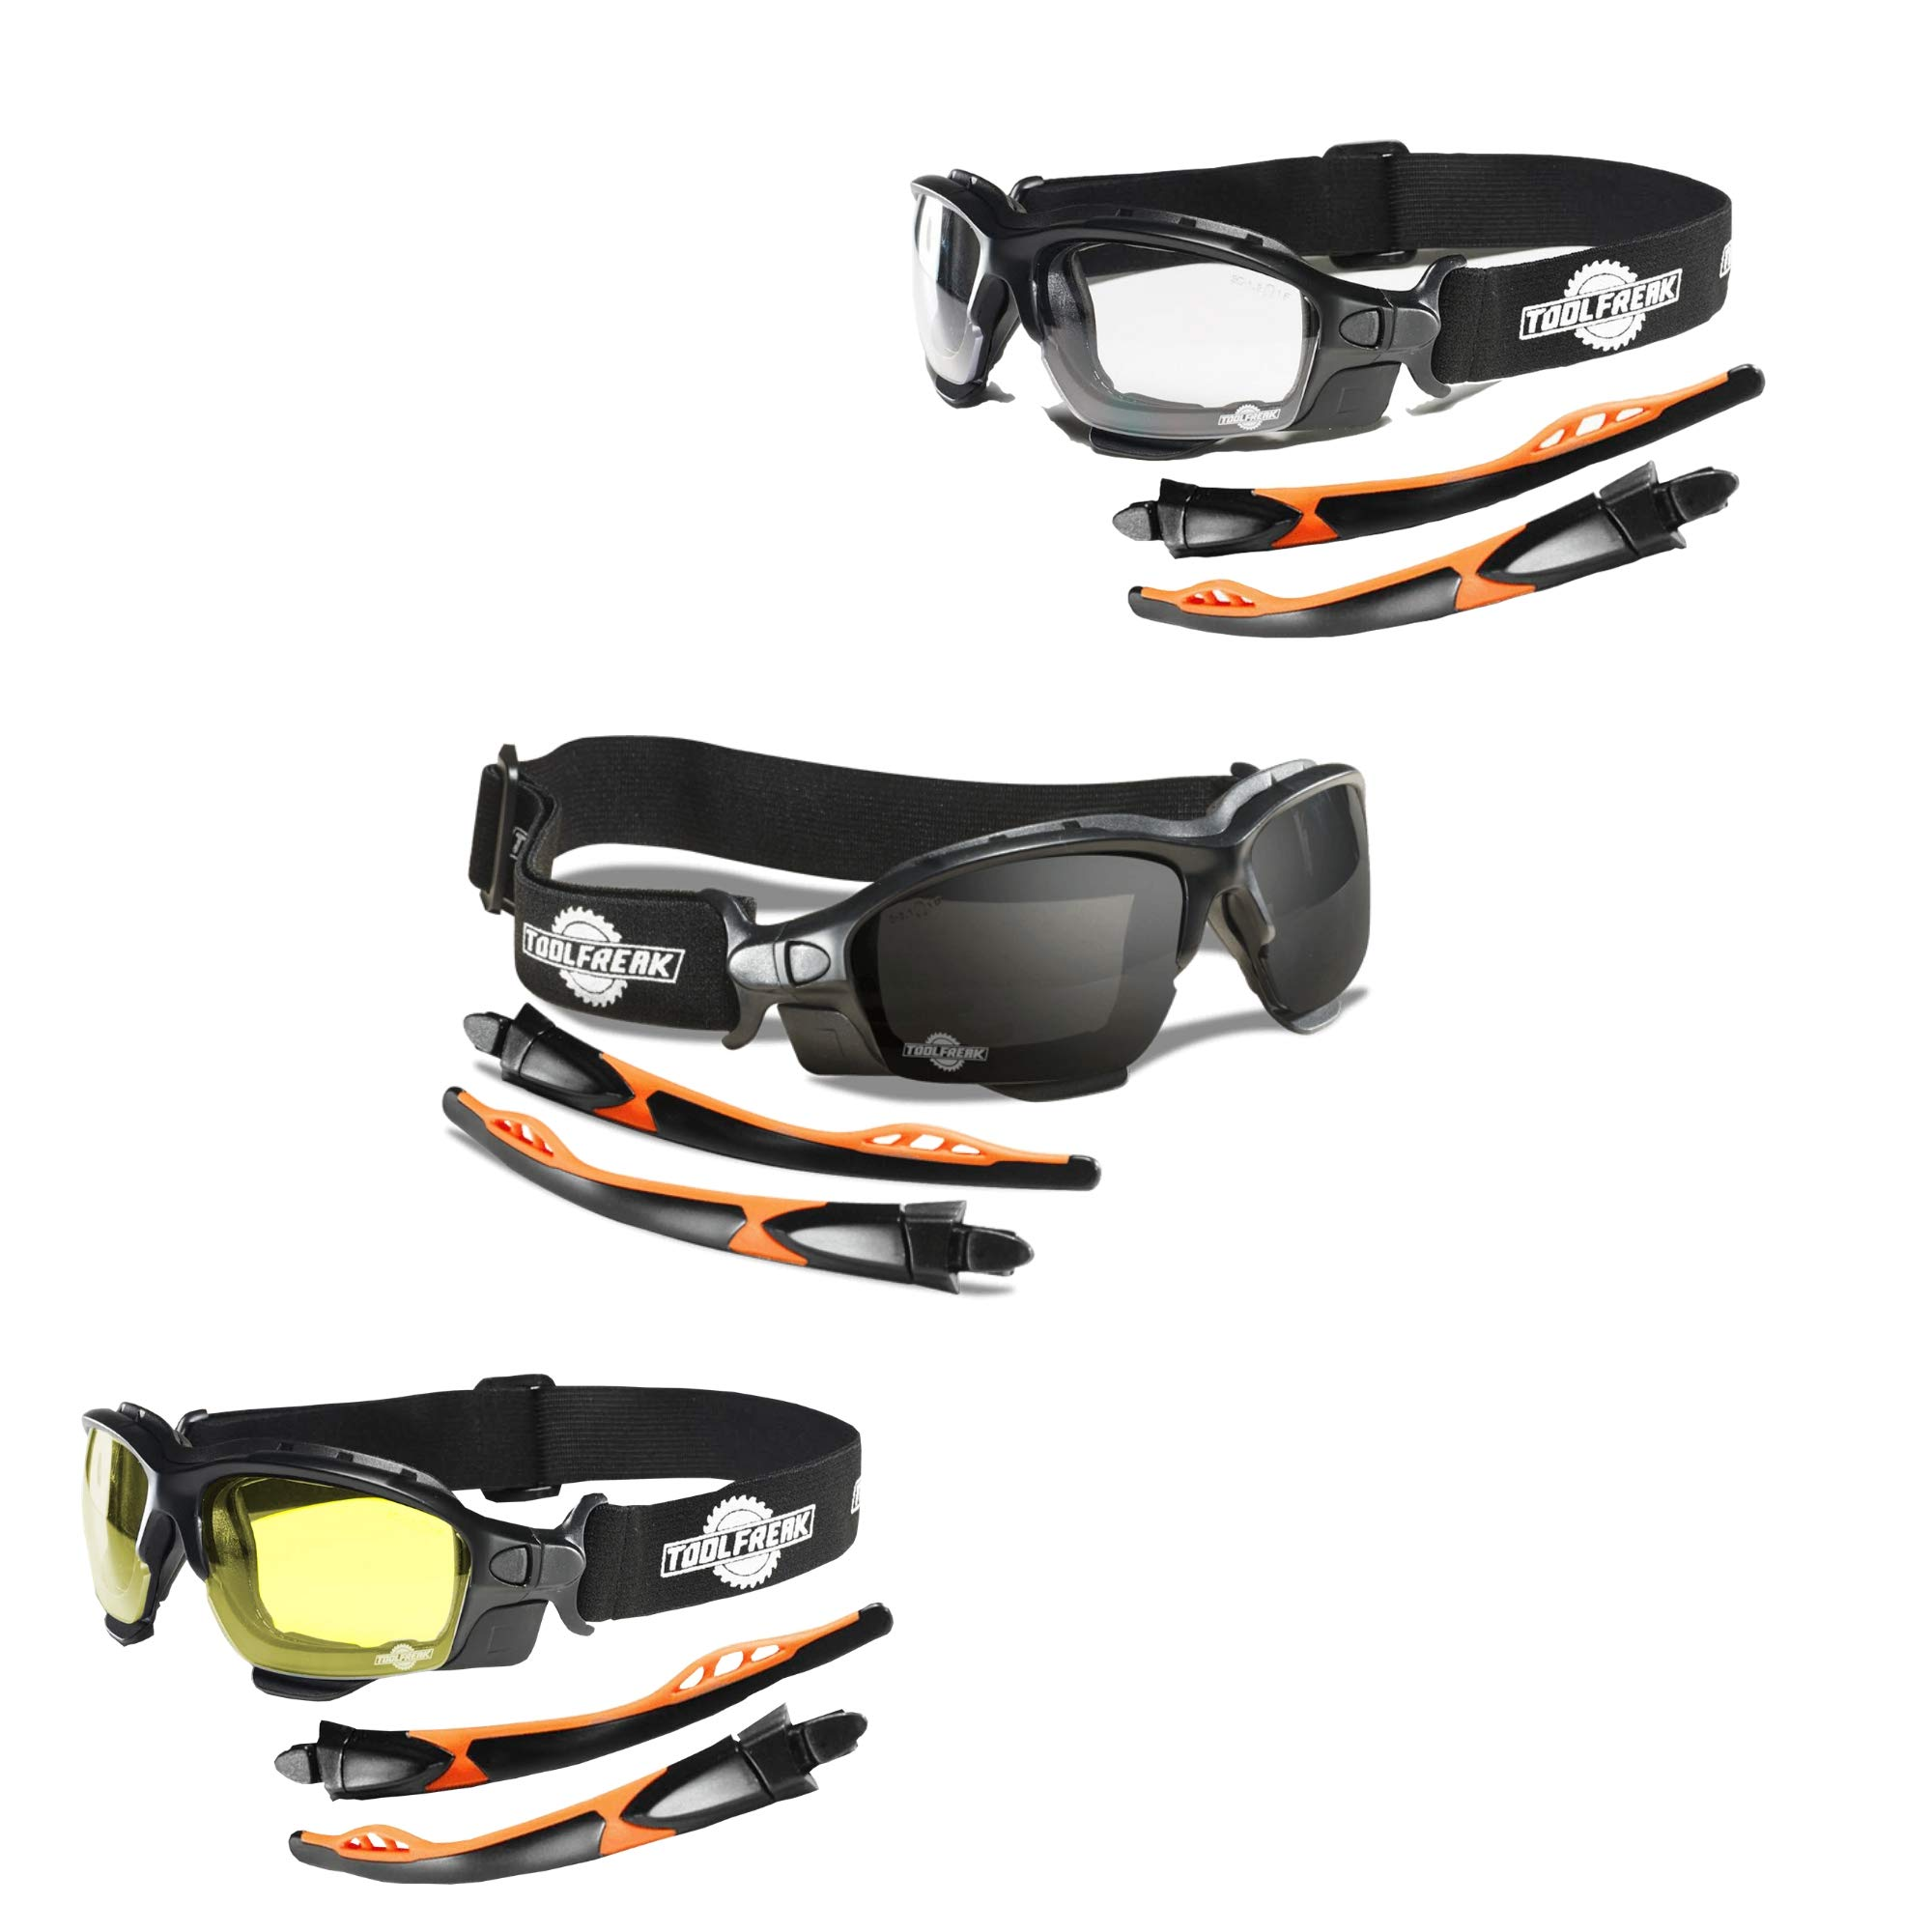 ToolFreak Spoggles Work and Sports Safety Glasses, Clear, Smoke and Yellow Tinted Lens Mega Bundle Offer, Foam Padded, ANSI z87 Rated with Impact and UV Protection by ToolFreak (Image #1)